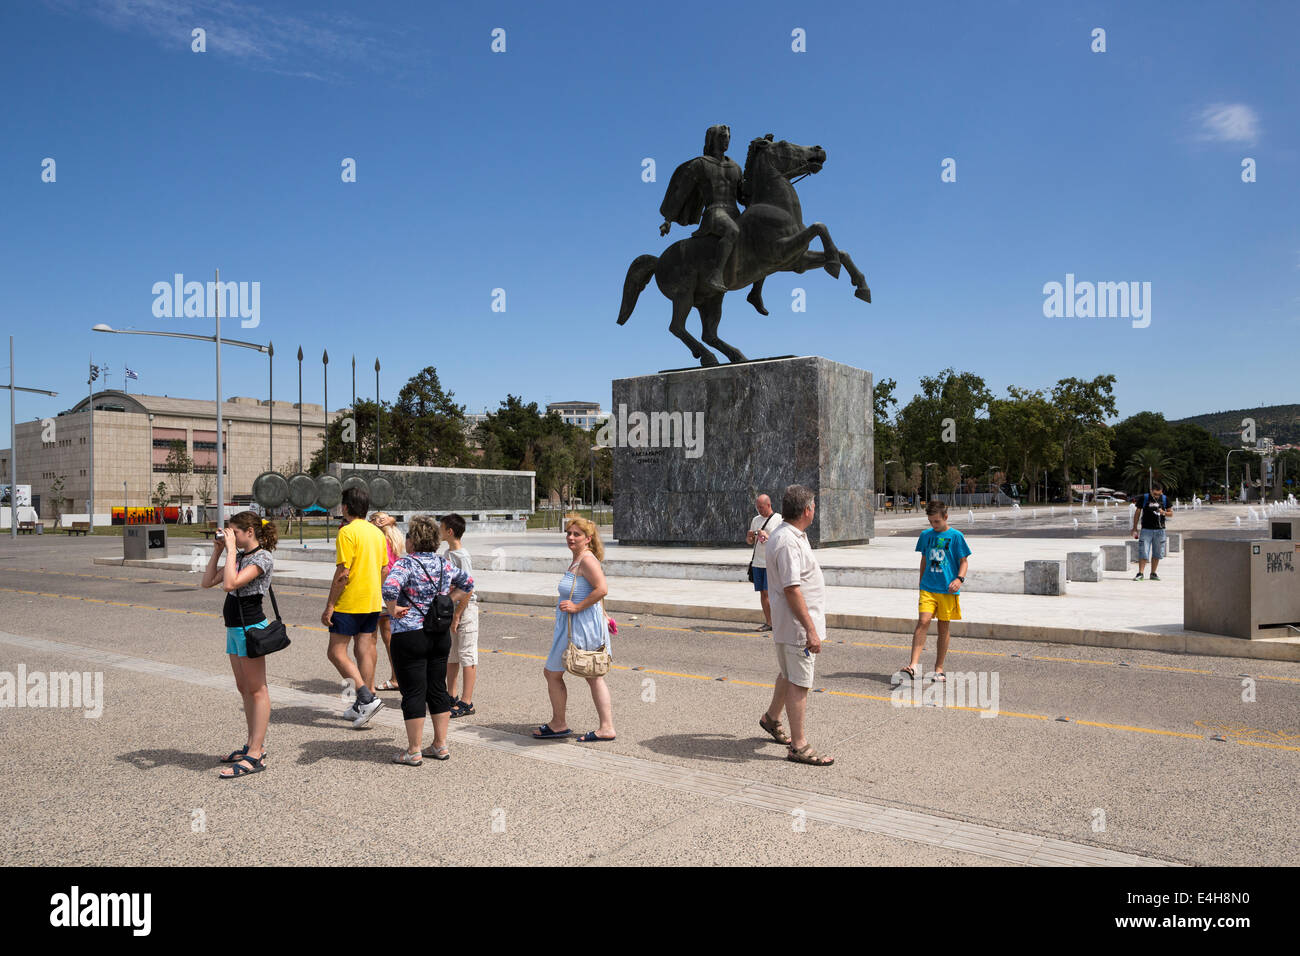 Tourists in front of a statue of Alexander the Great and his horse Bucephalus, during a sunny morning, in Thessaloniki, - Stock Image